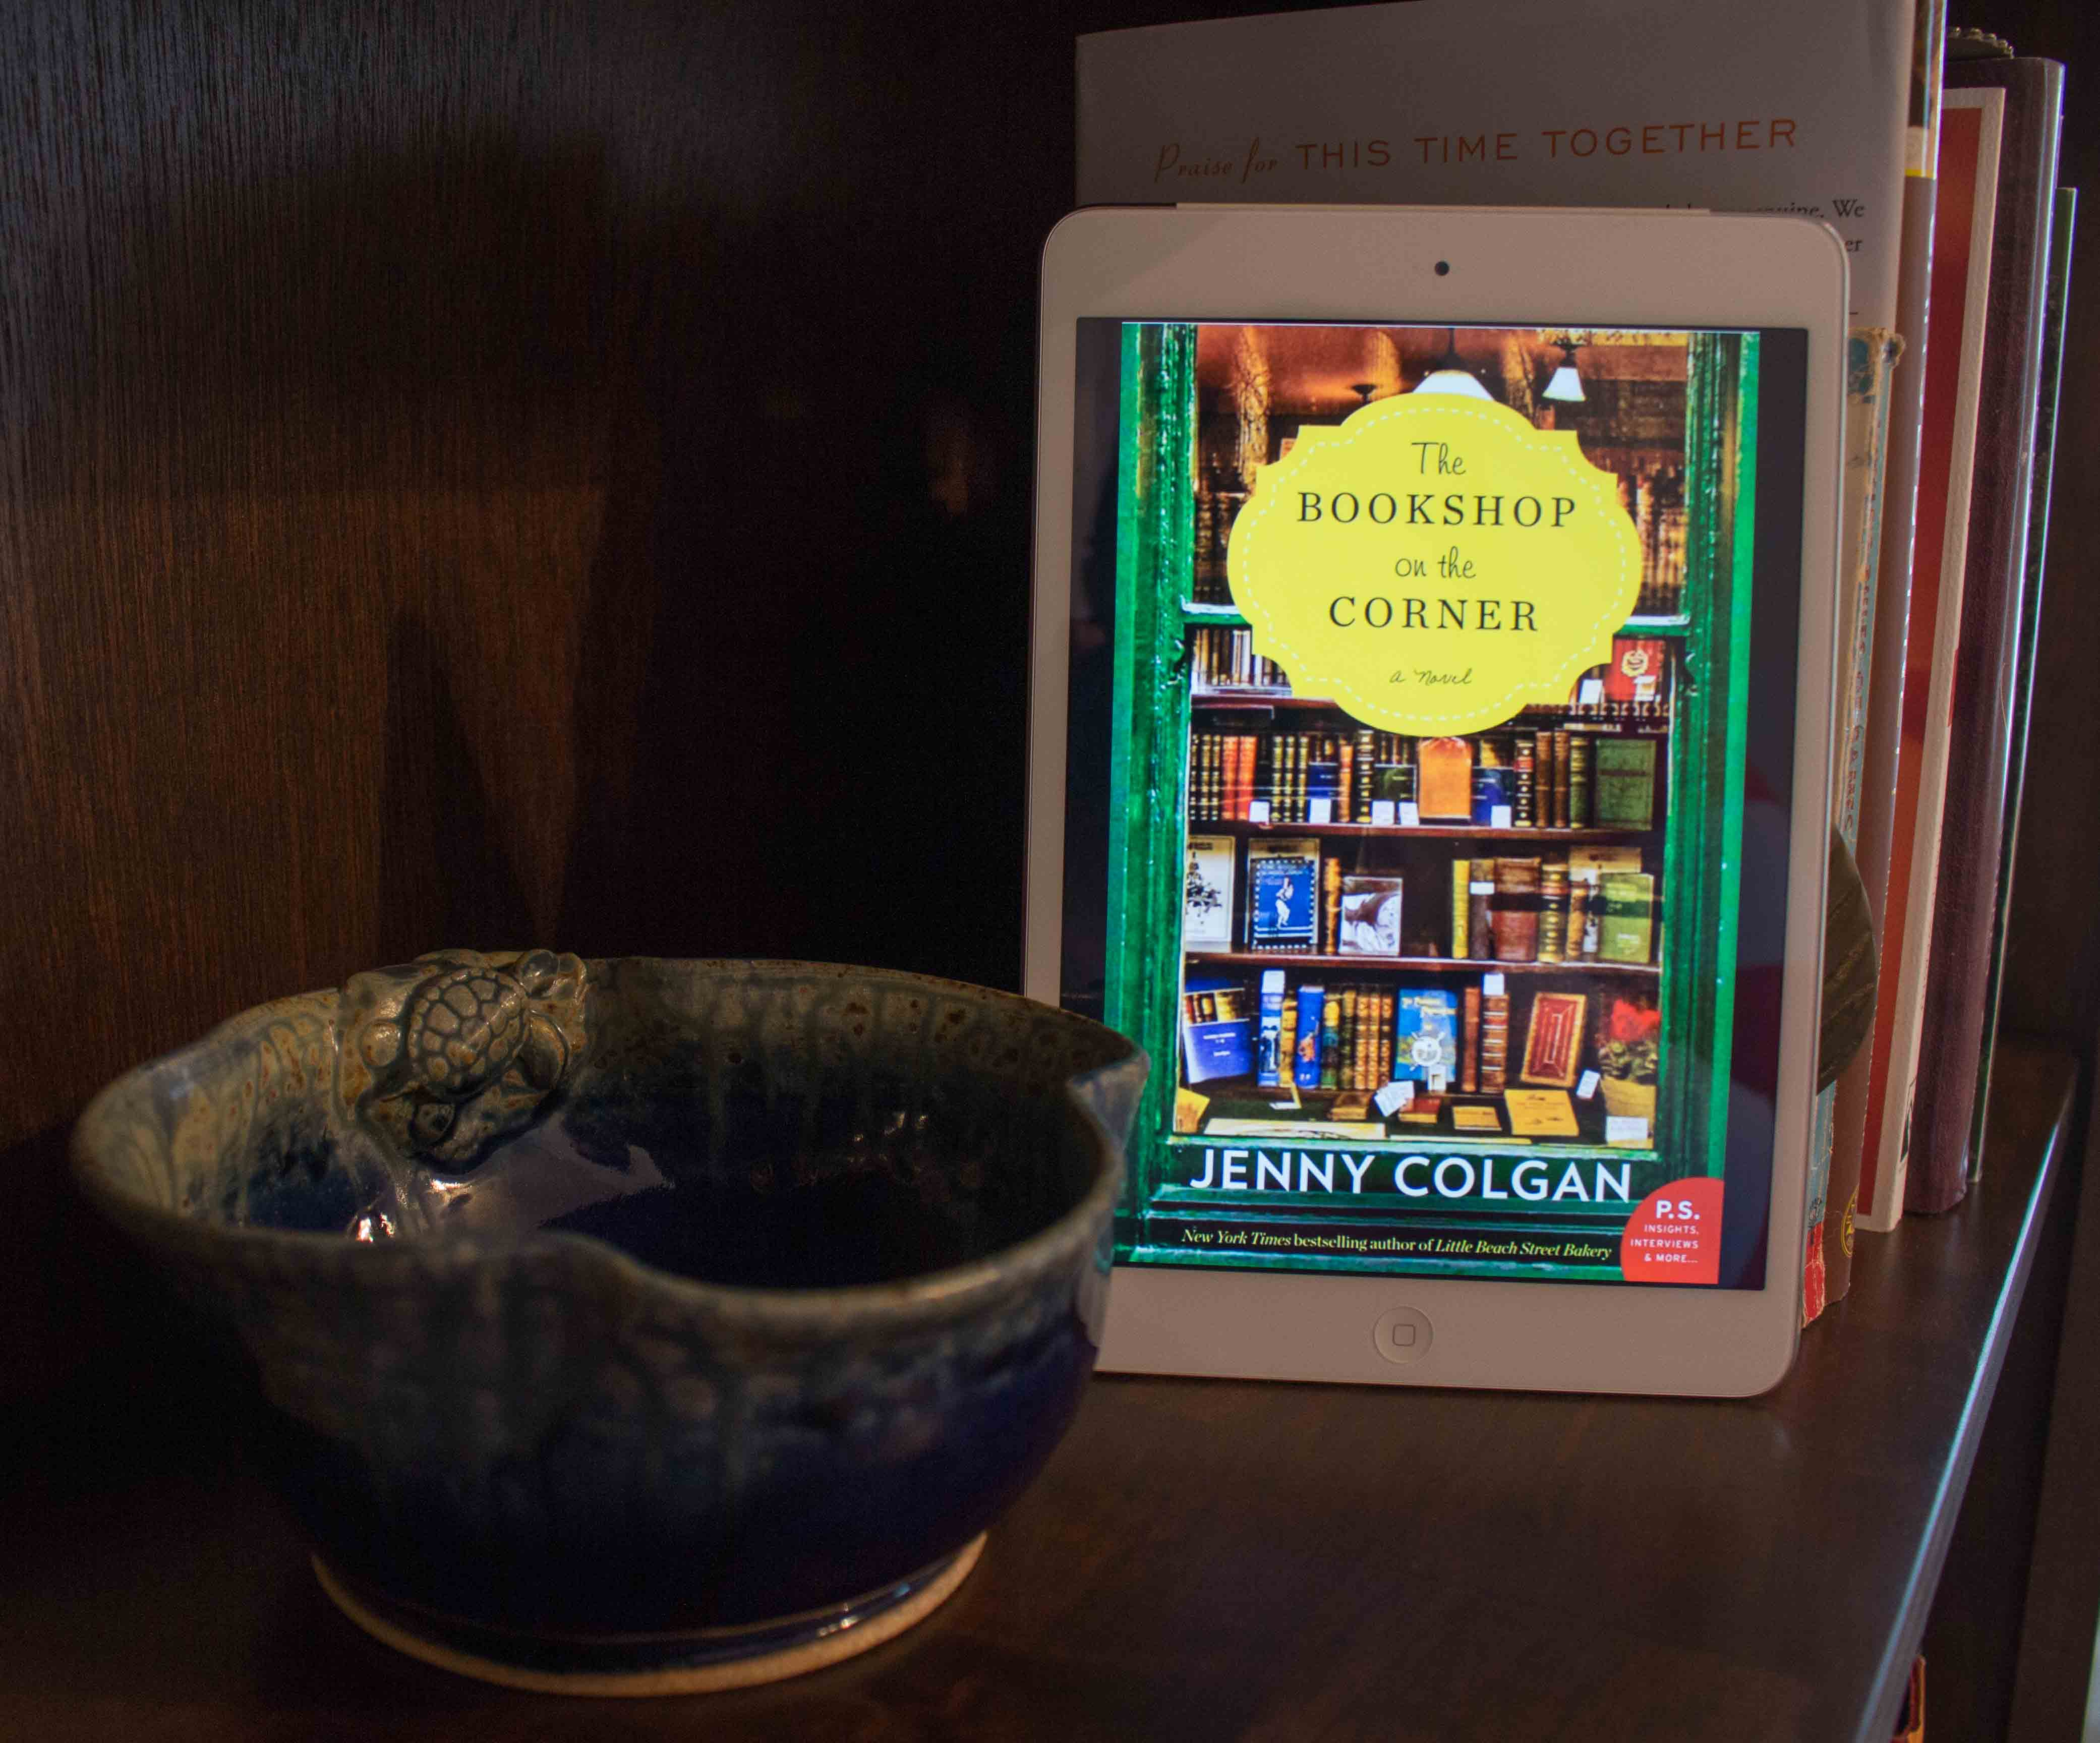 Looking for a great fiction read? I loved the Bookshop on the Corner!